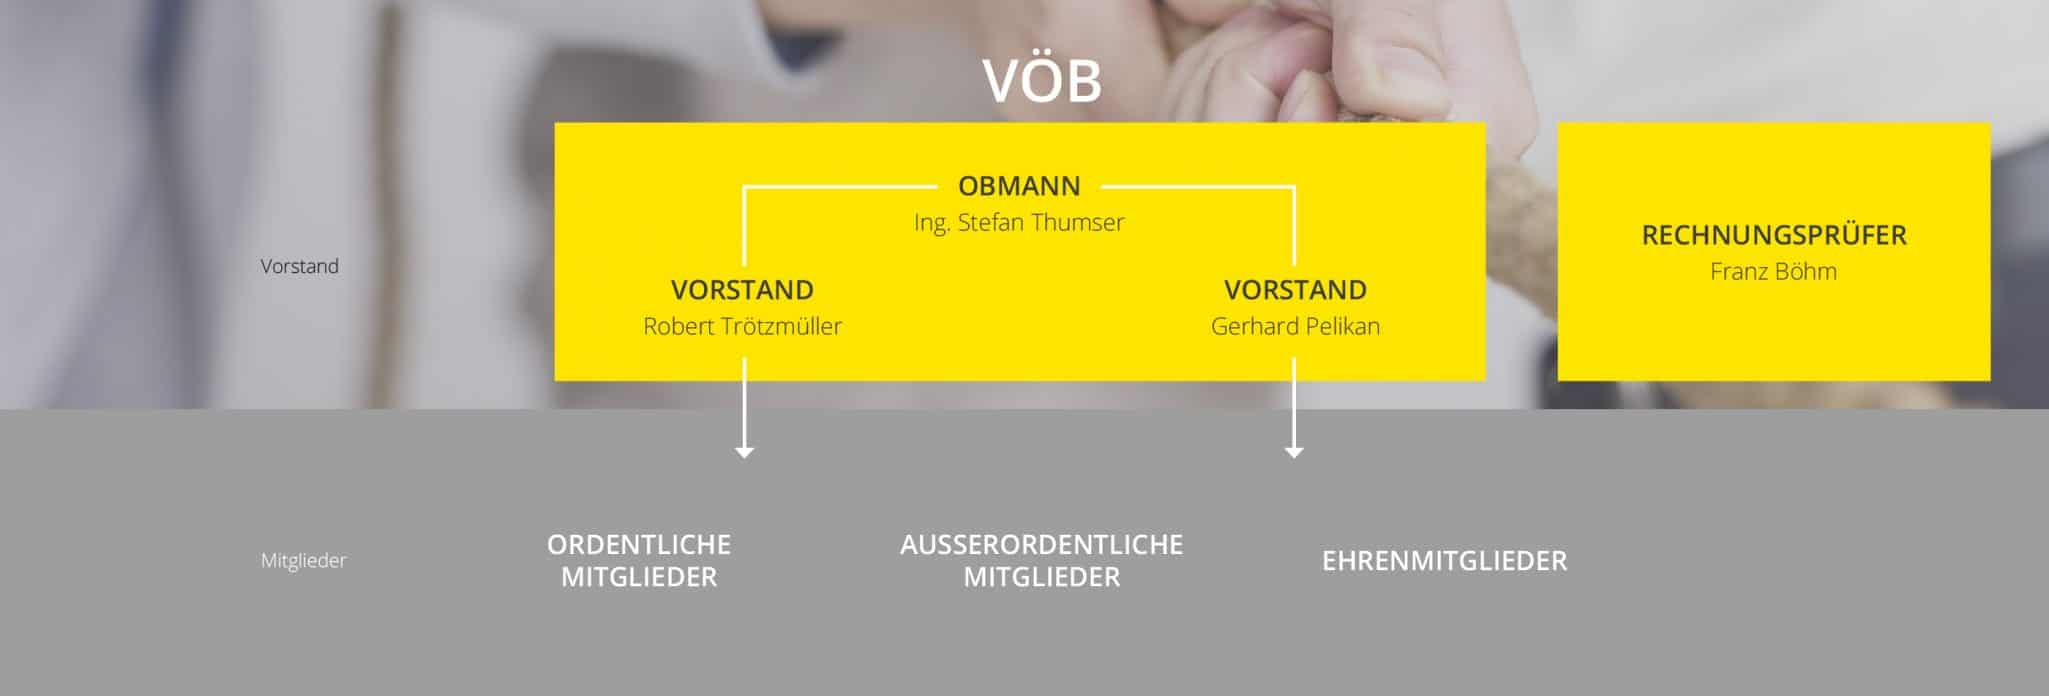 VÖB - Board Structure - mobileView